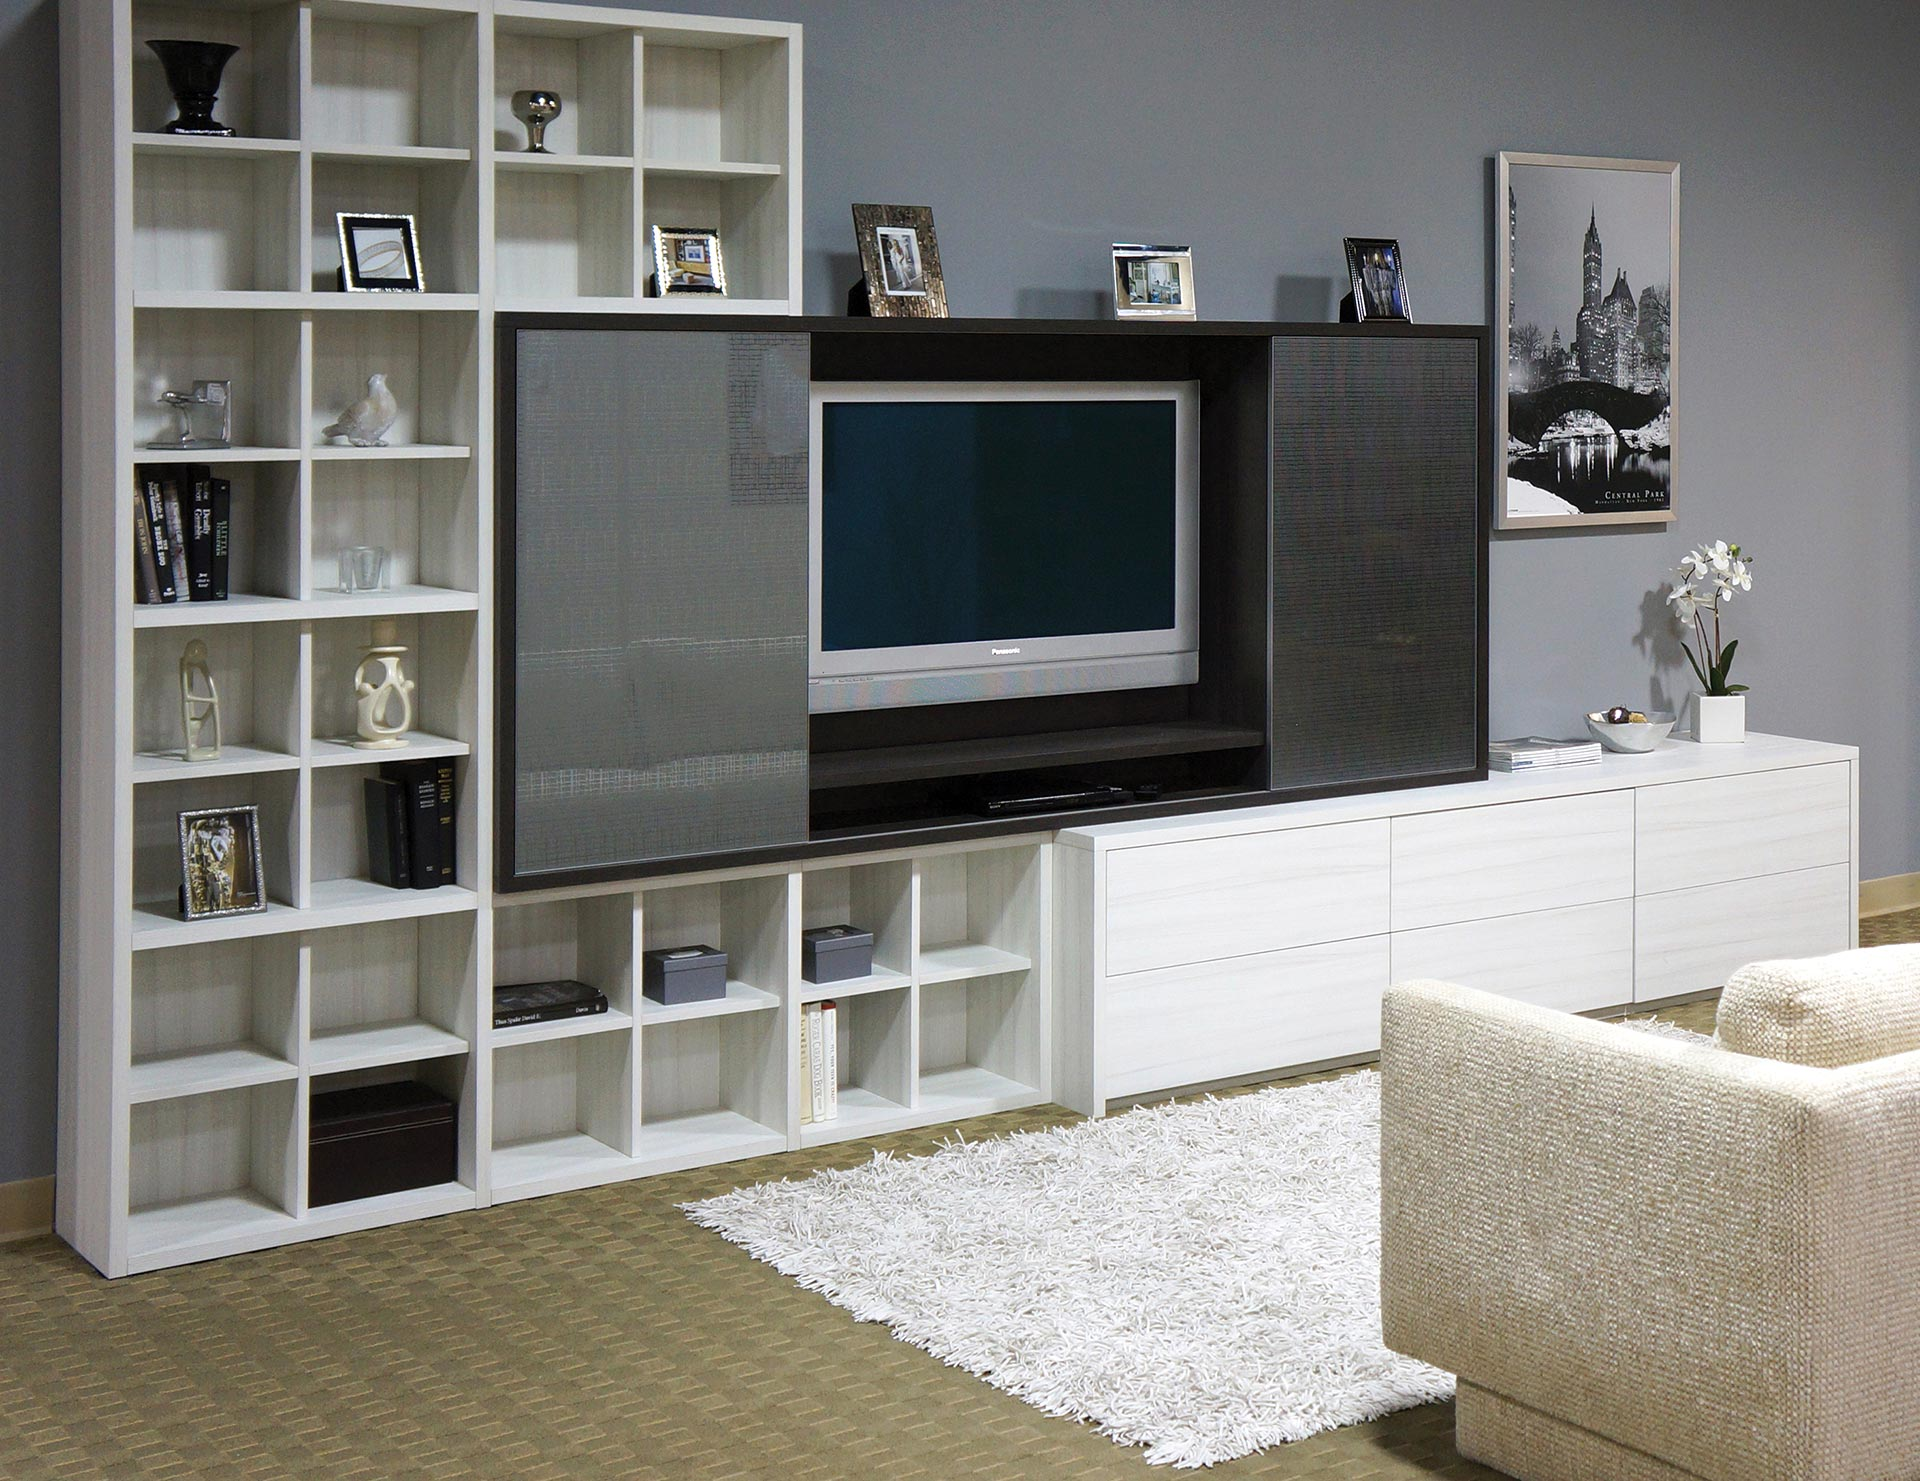 built entertainment centers media cabinets closets center tesoro tuscan moon lago venetian wenge celsius bronze glass doors gllry floating shelves for black and white wood grain